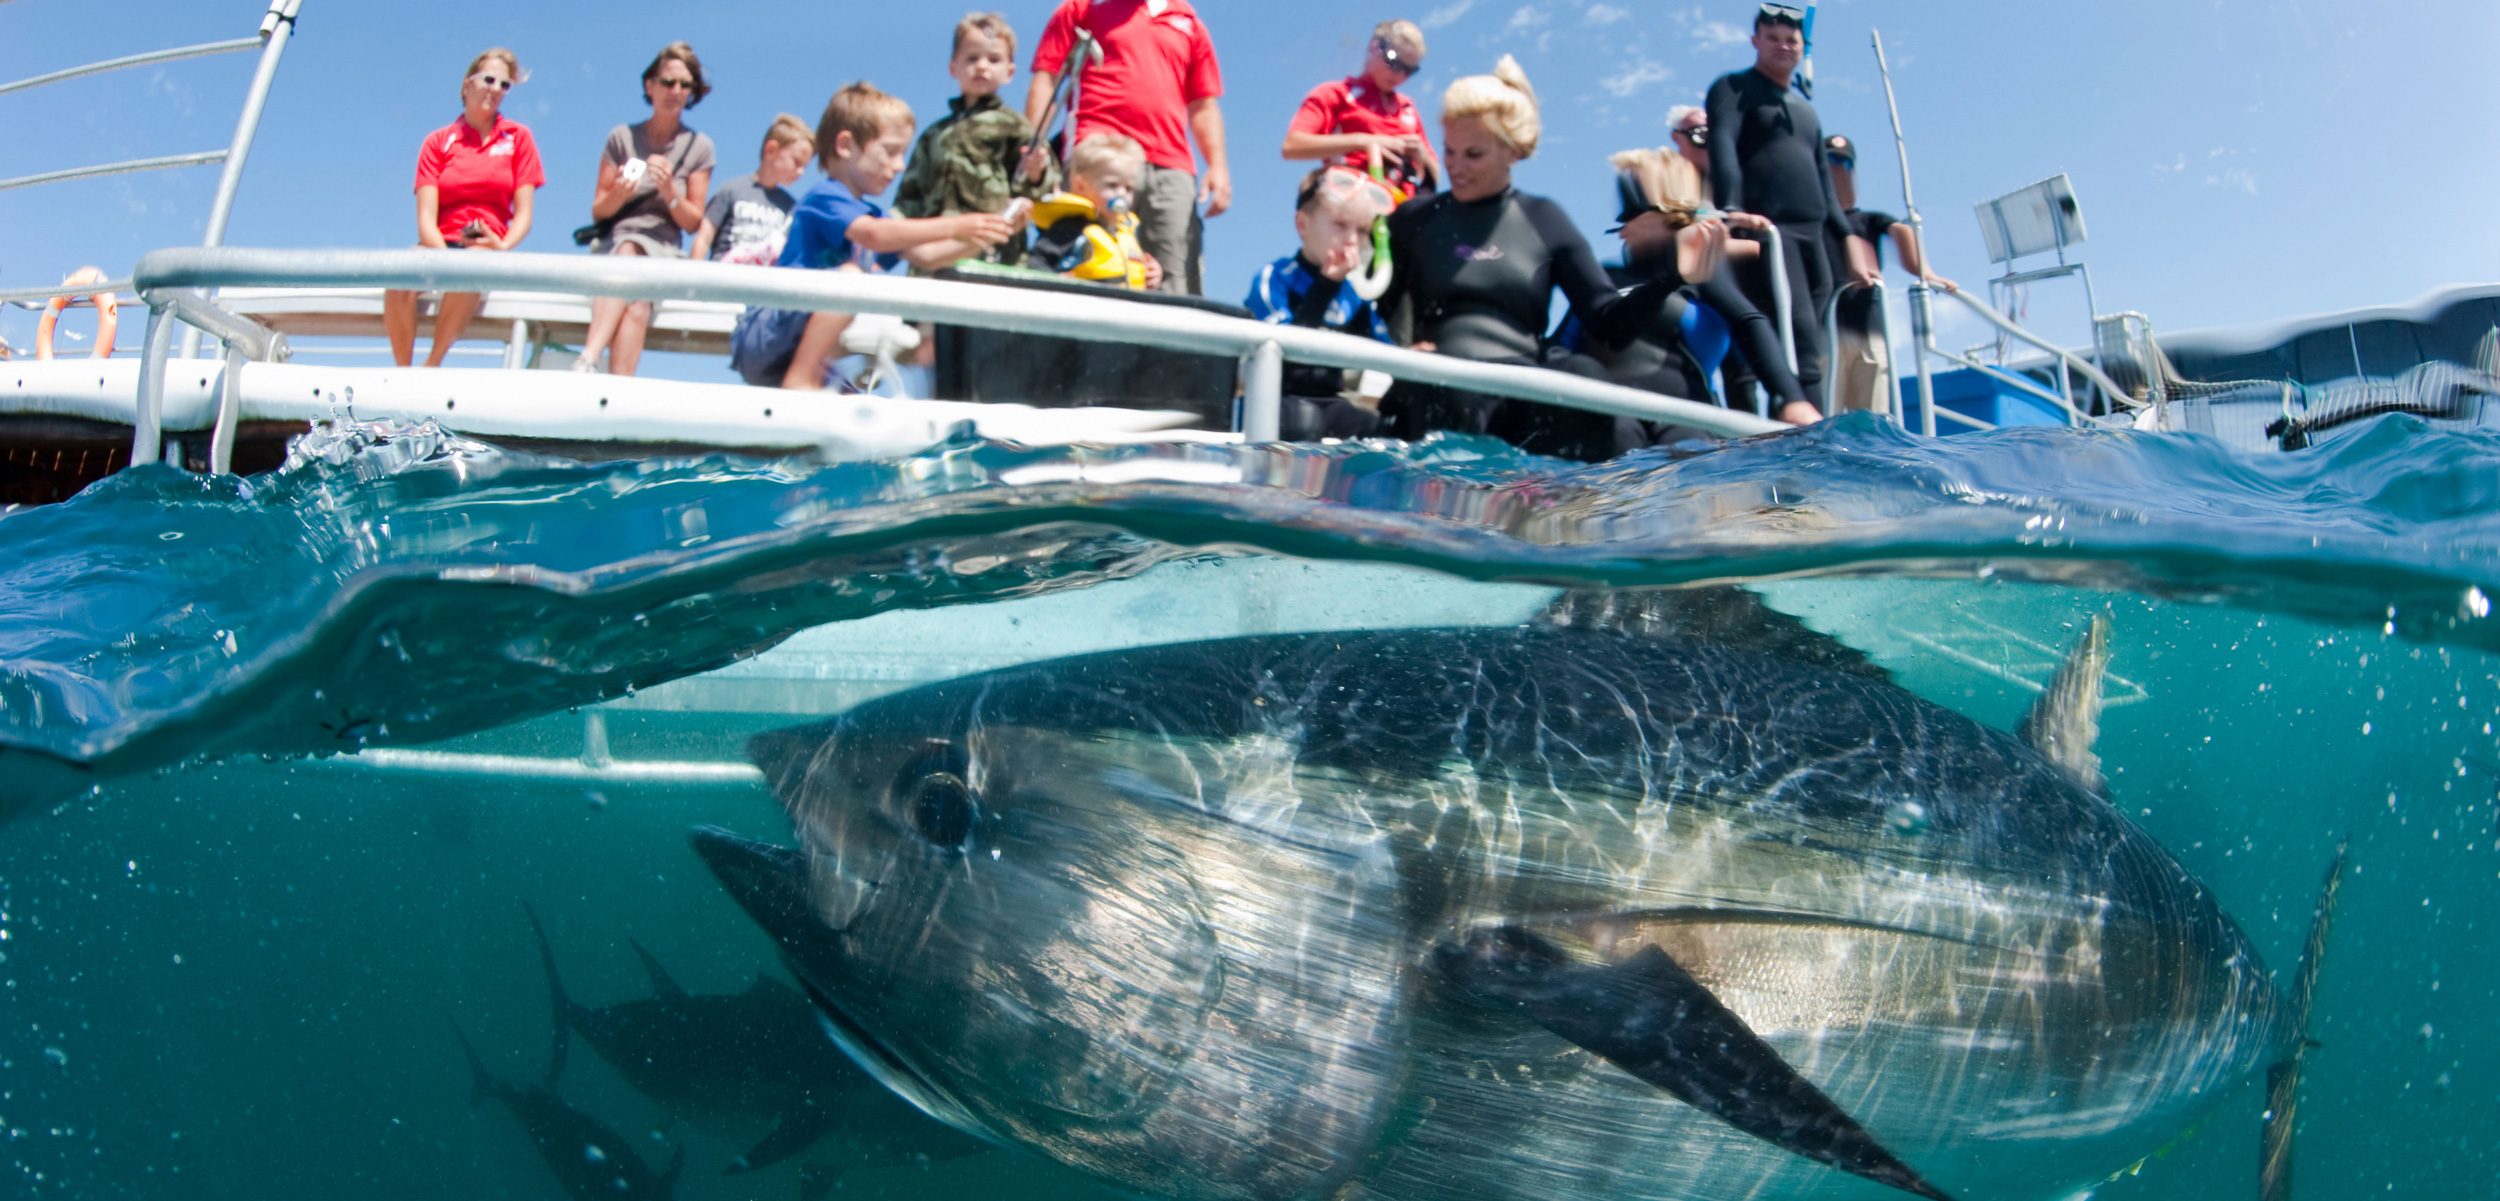 Ranching southern bluefin tuna has been a big-ticket industry in South Australia for years. One company hopes that inviting tourists to swim with the fish will prove successful, too. Photo by Michael Patrick O'Neill/Alamy Stock Photo